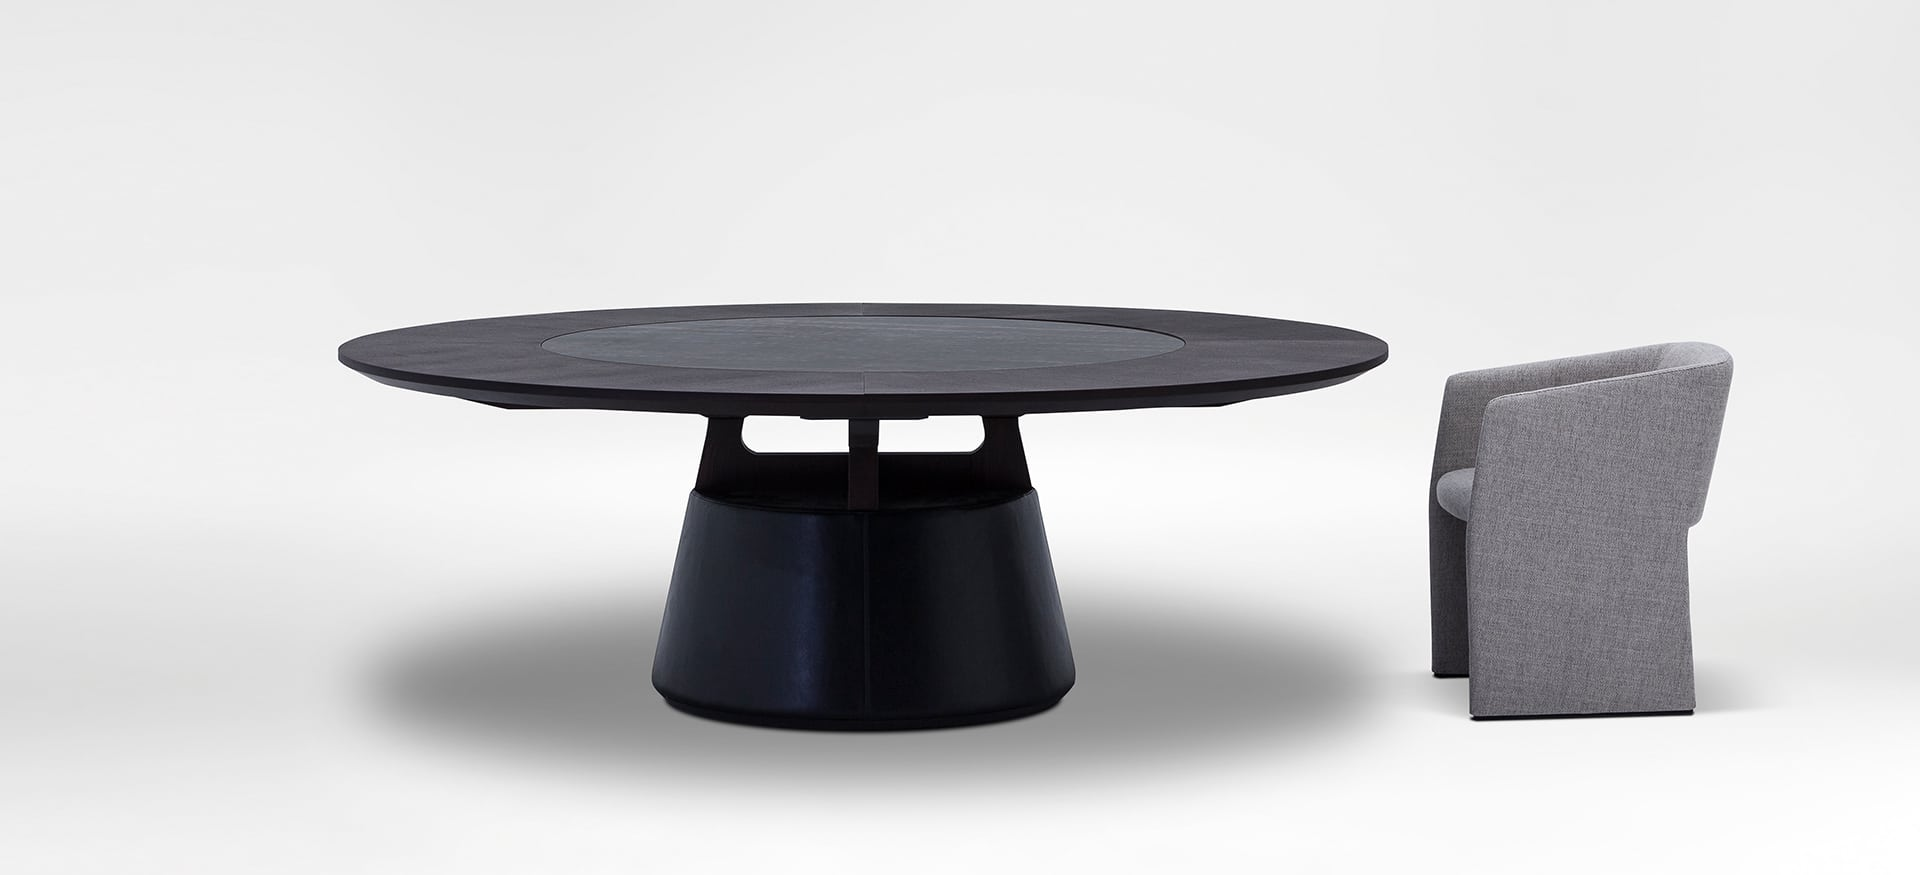 UNITY DINING TABLES & DESKS